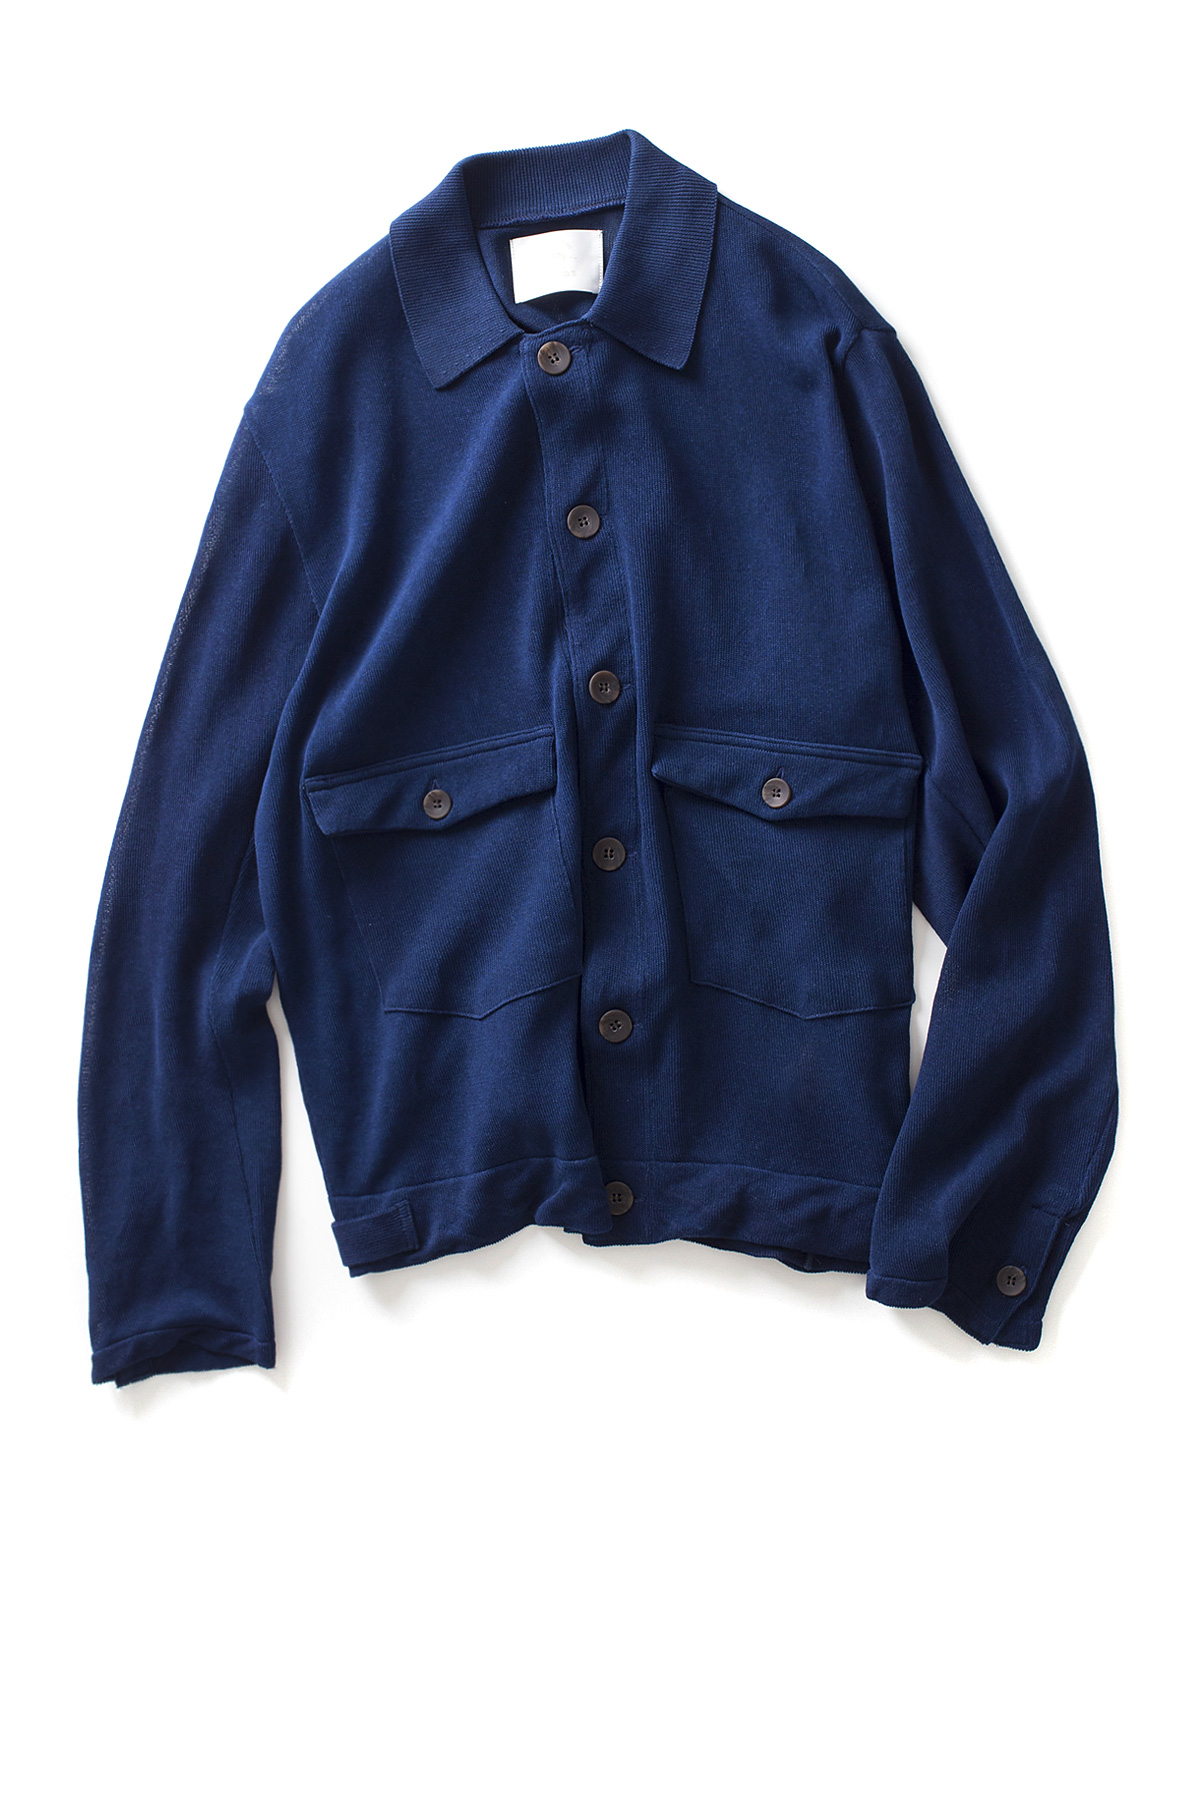 bukht : Officer Knit Jacket (Indigo)